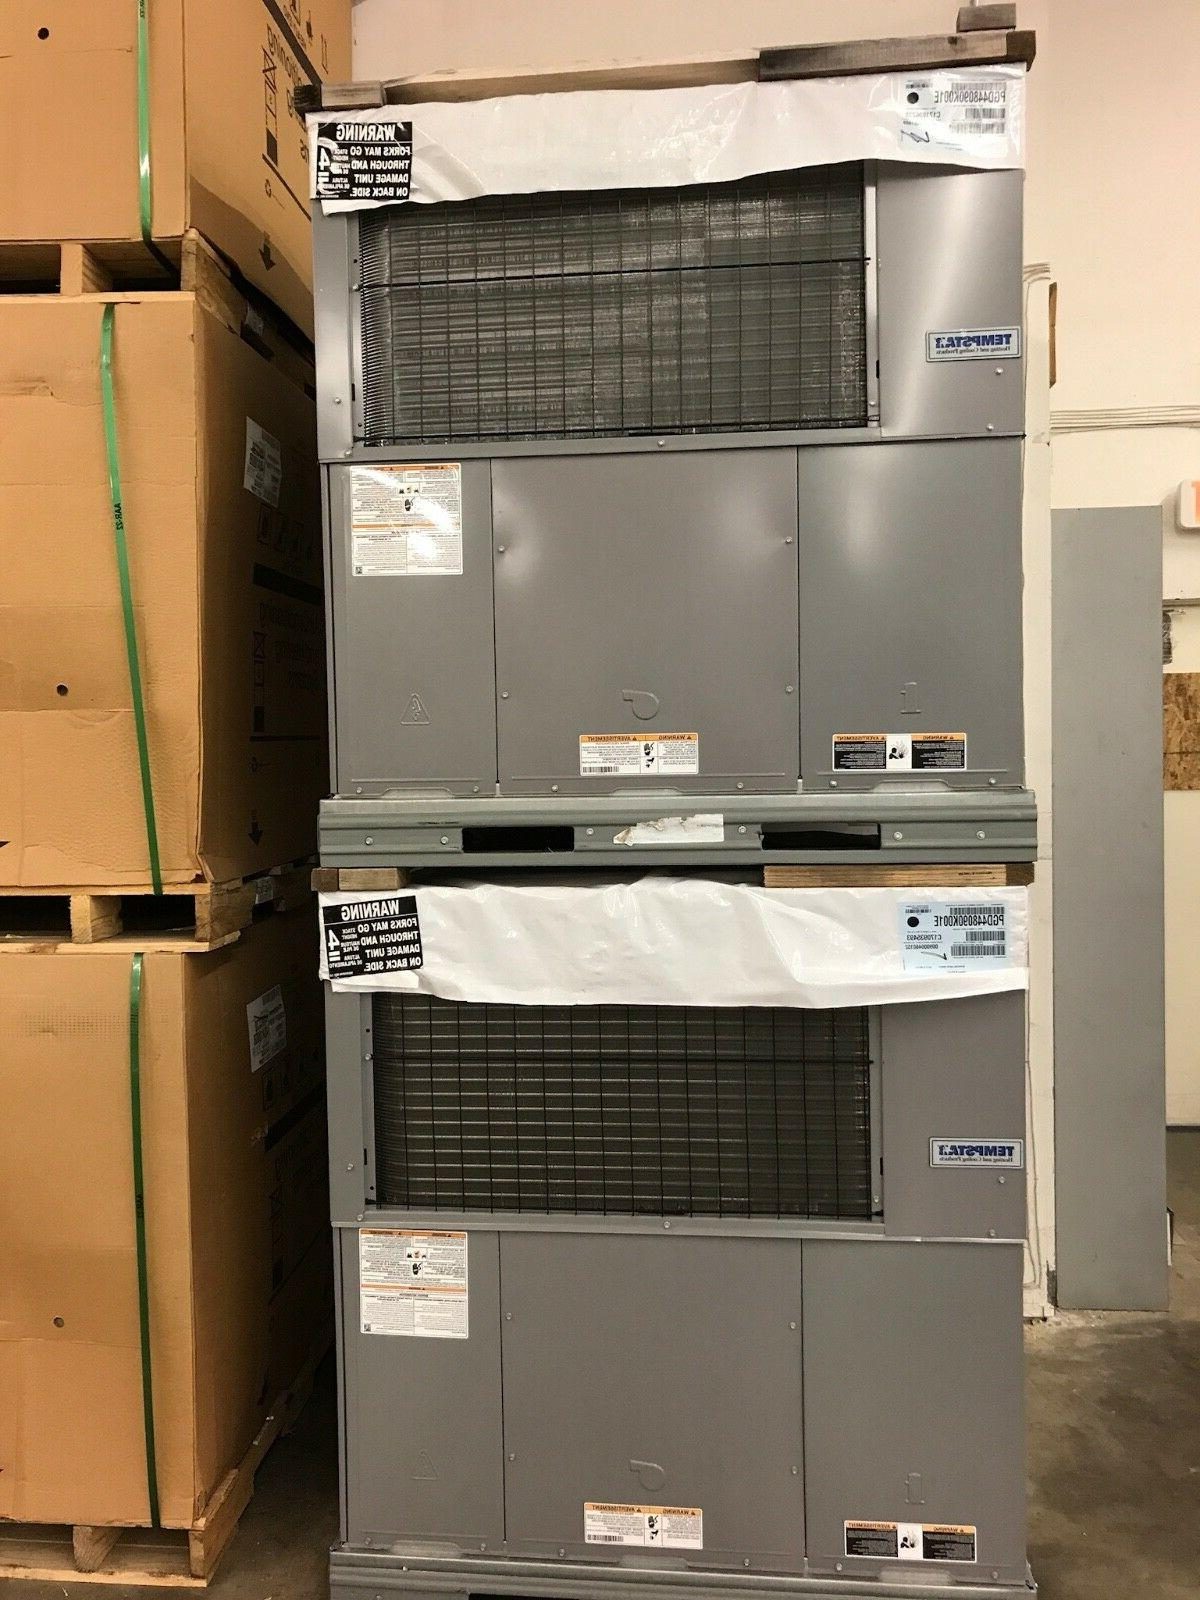 Icp Carrier 4 Ton 14 Seer Residential Package